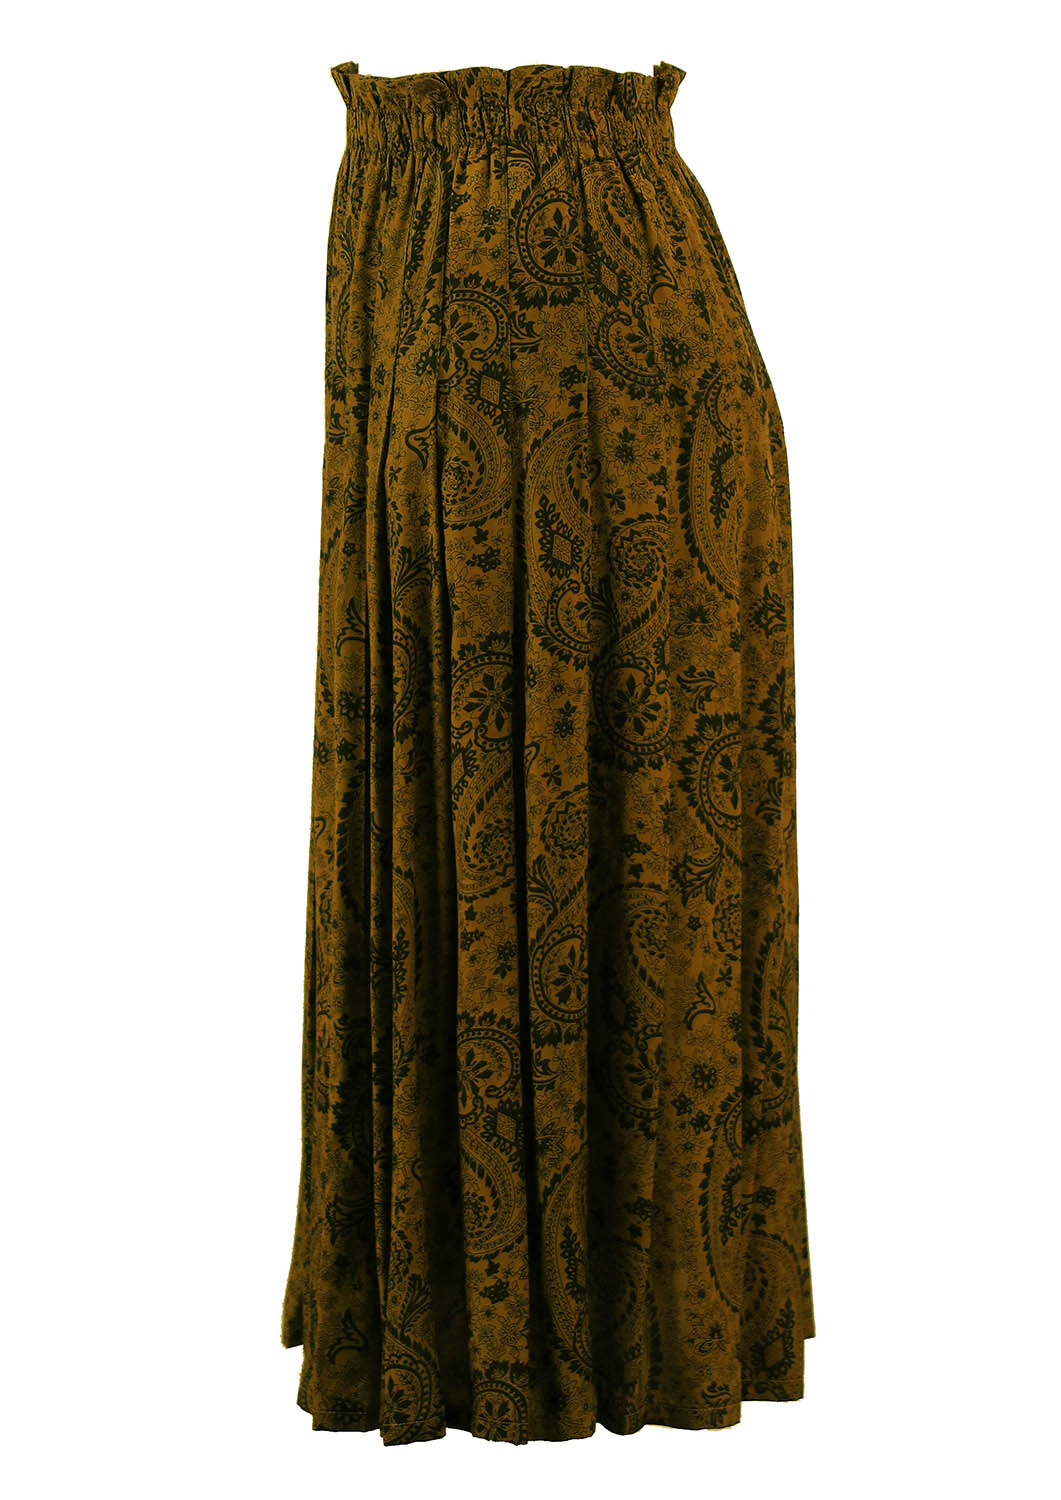 Olive Green Pleated Skirt With Paisley Design S Reign